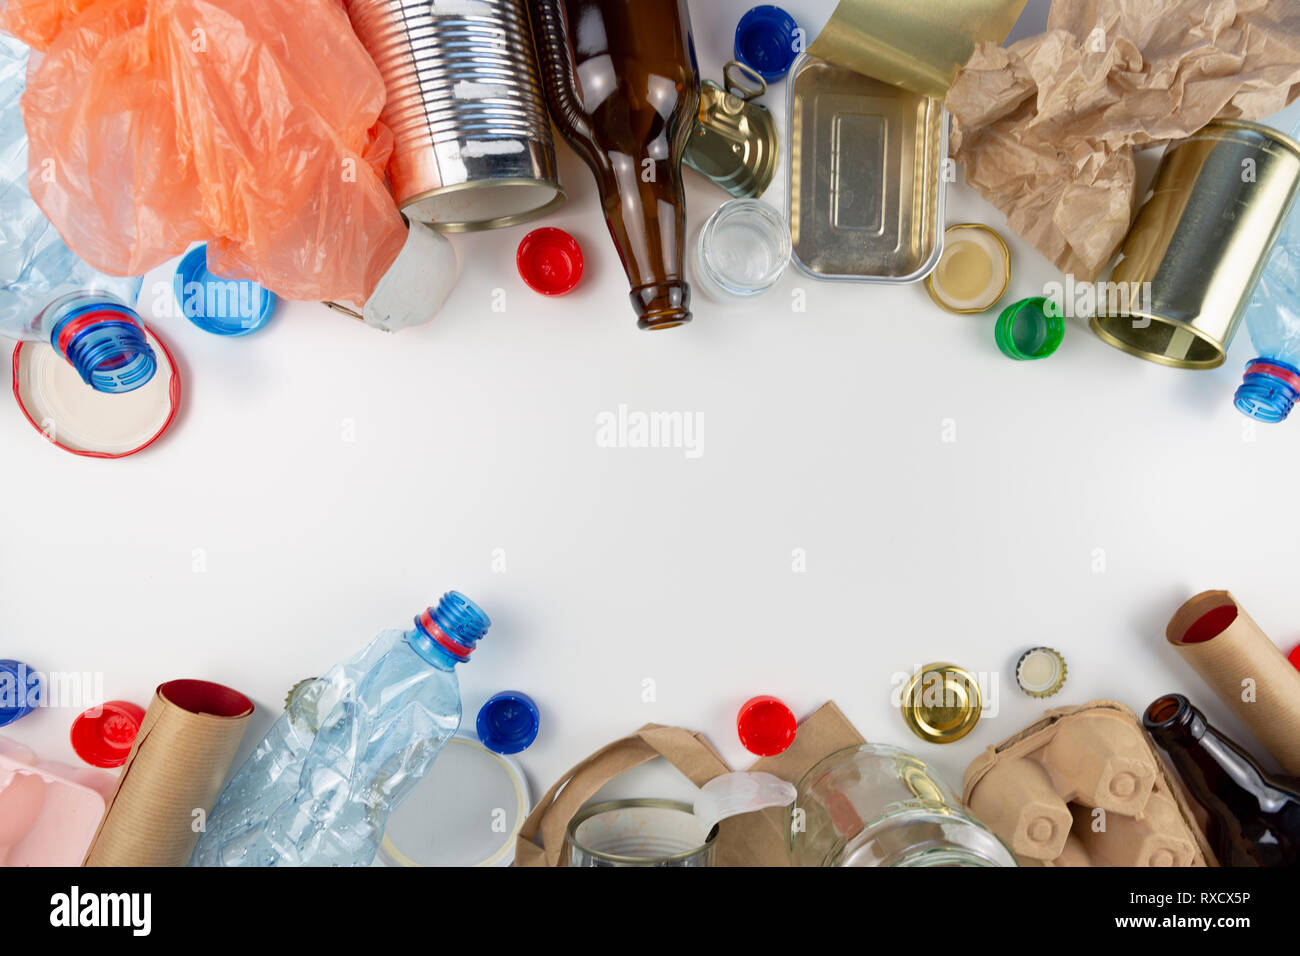 Plastic, glass, metal and paper garbage for recycling concept reuse and recycle. Copy space - Stock Image